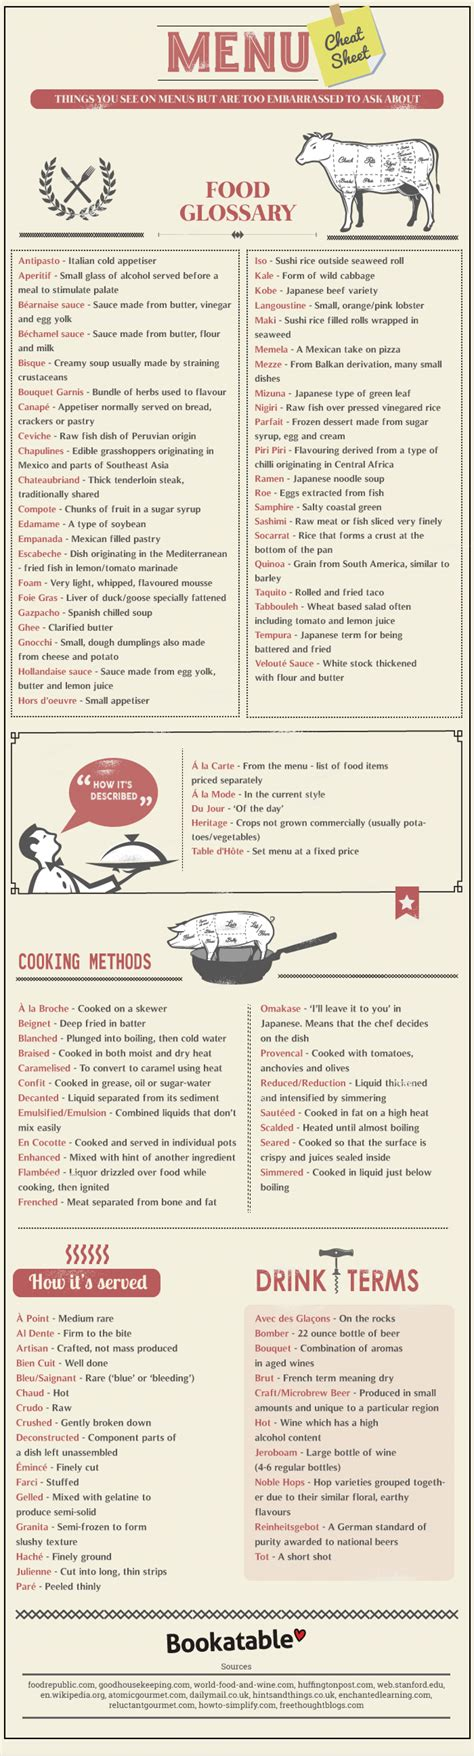 90 Food Menu Terms Explained Discover Here The Food